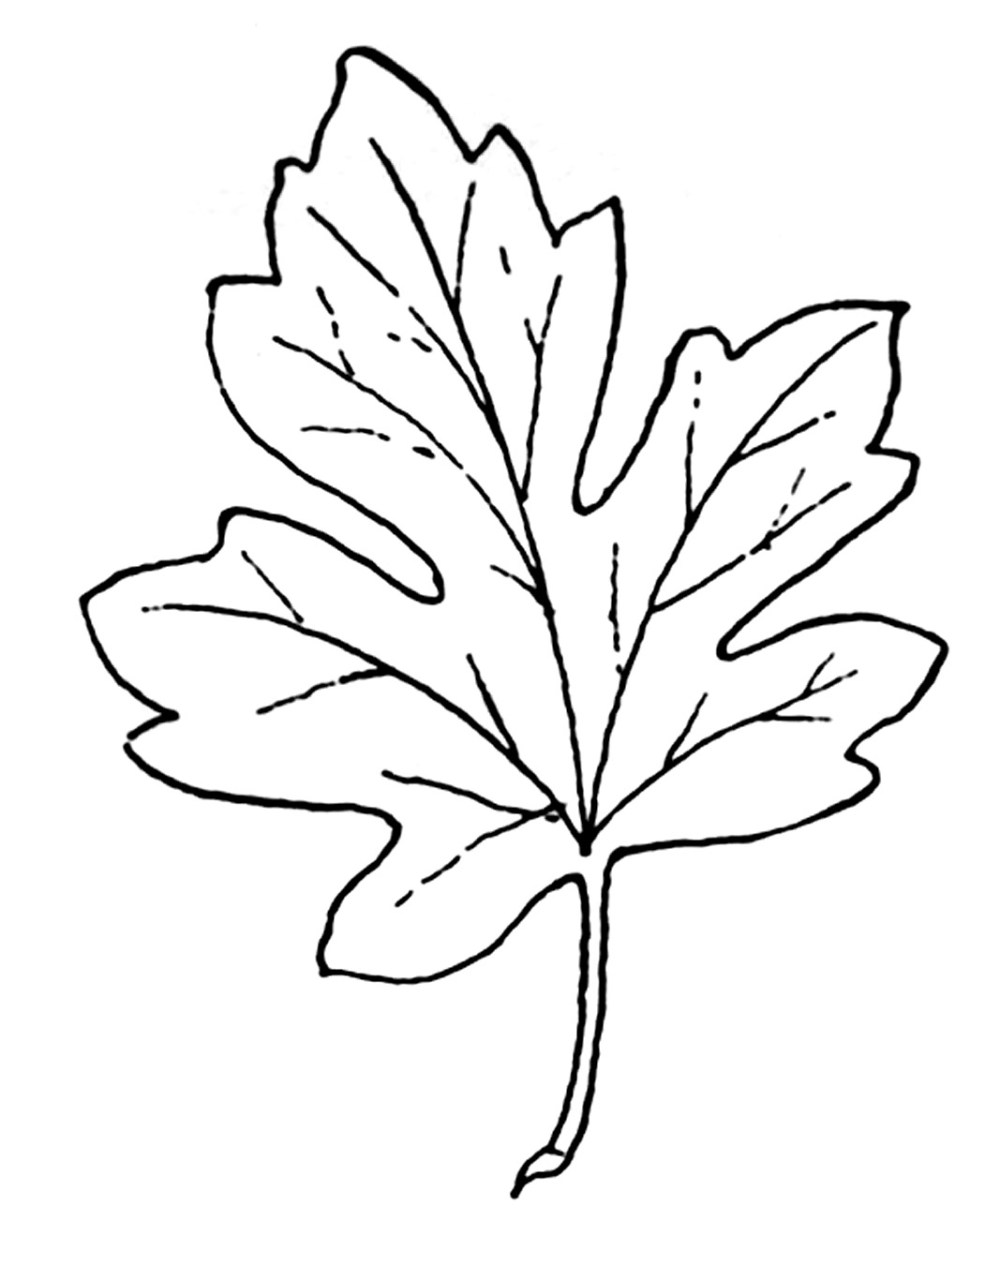 medium resolution of black and white leaf clipart